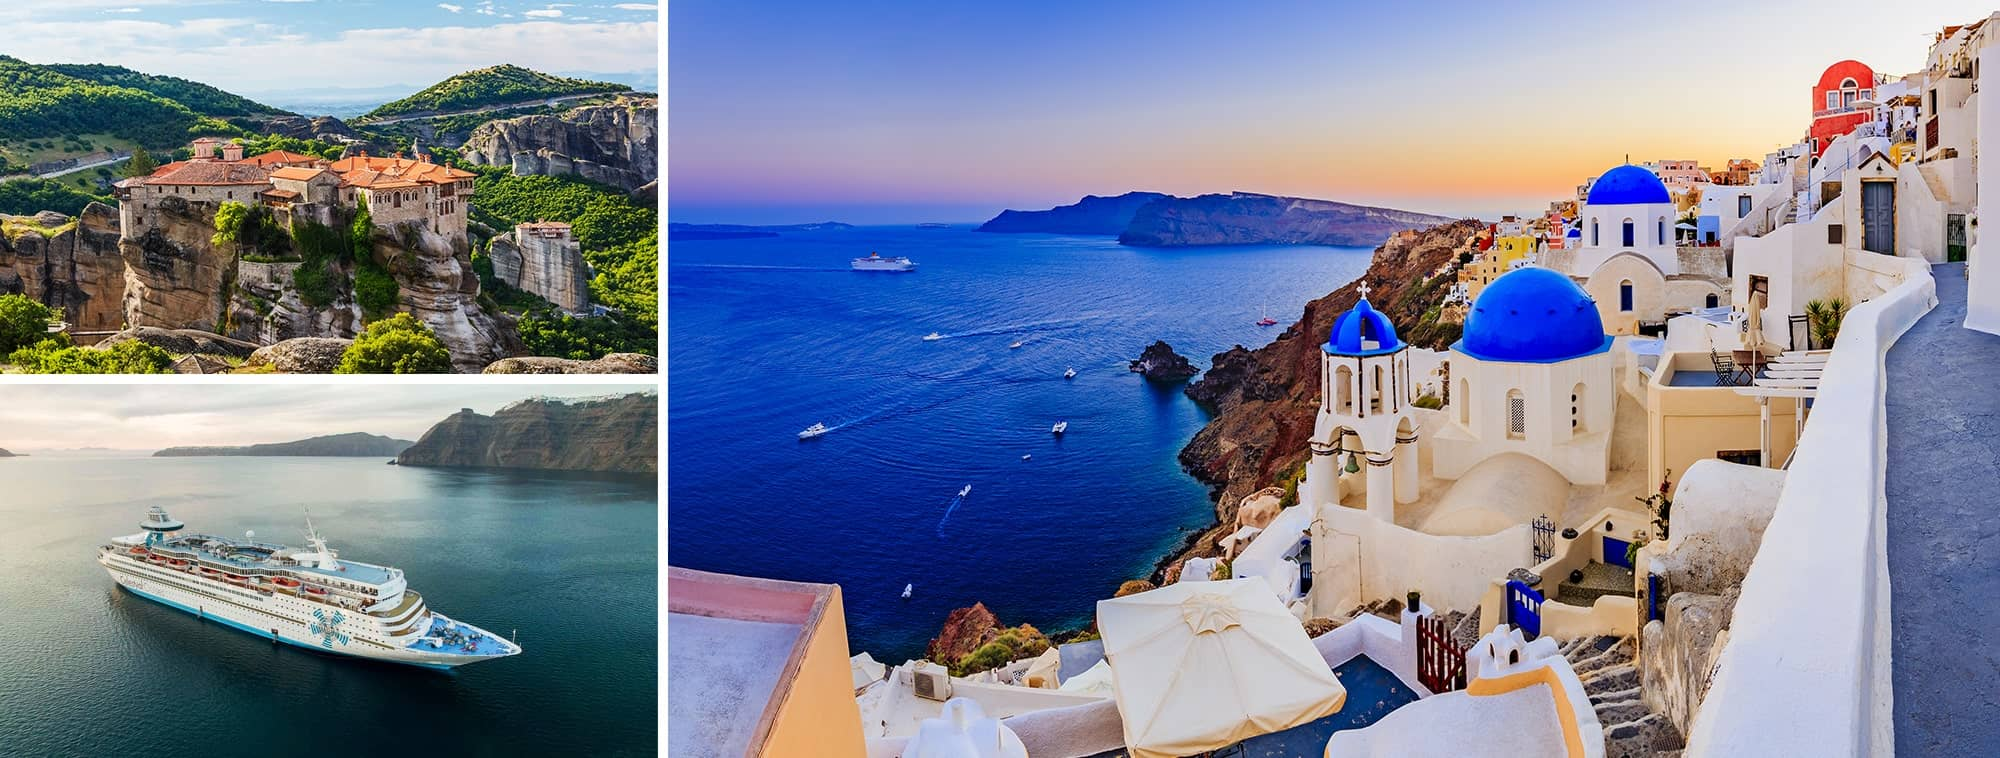 Classic Greece, Greek Islands - Turkey Cruise & Santorini Top Banner